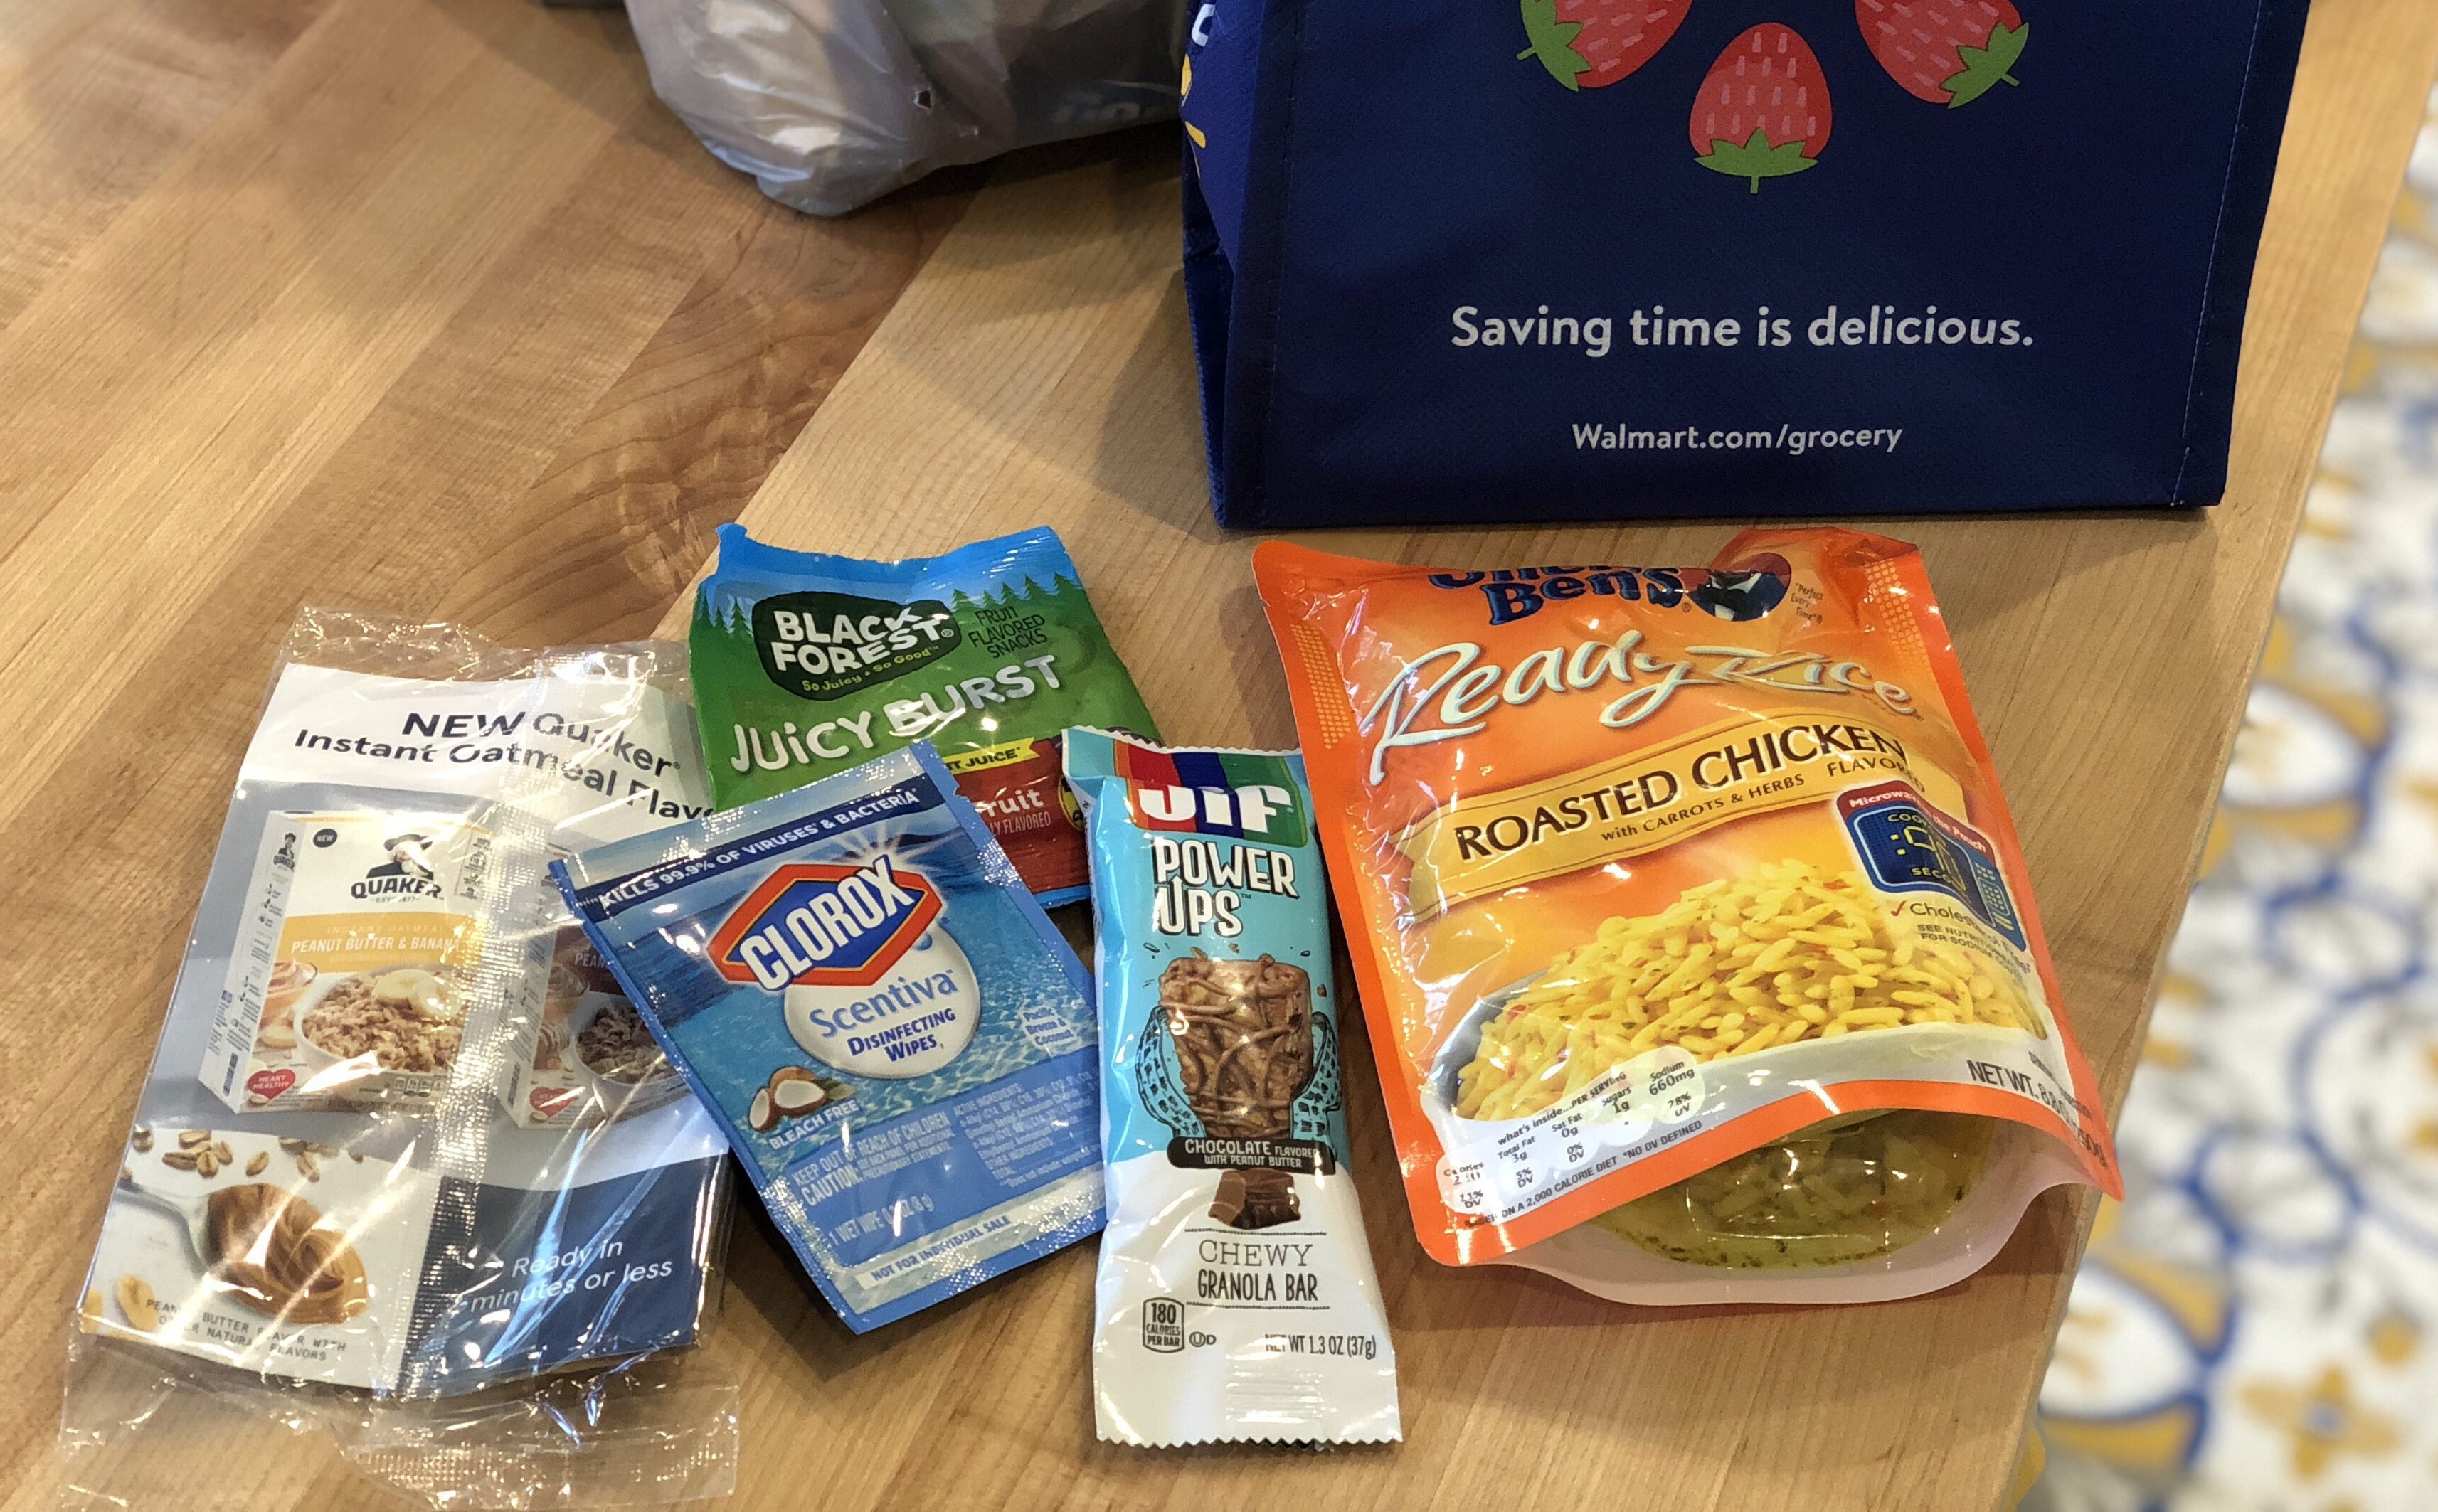 My walmart grocery pickup order includes a free goody bag for new shoppers